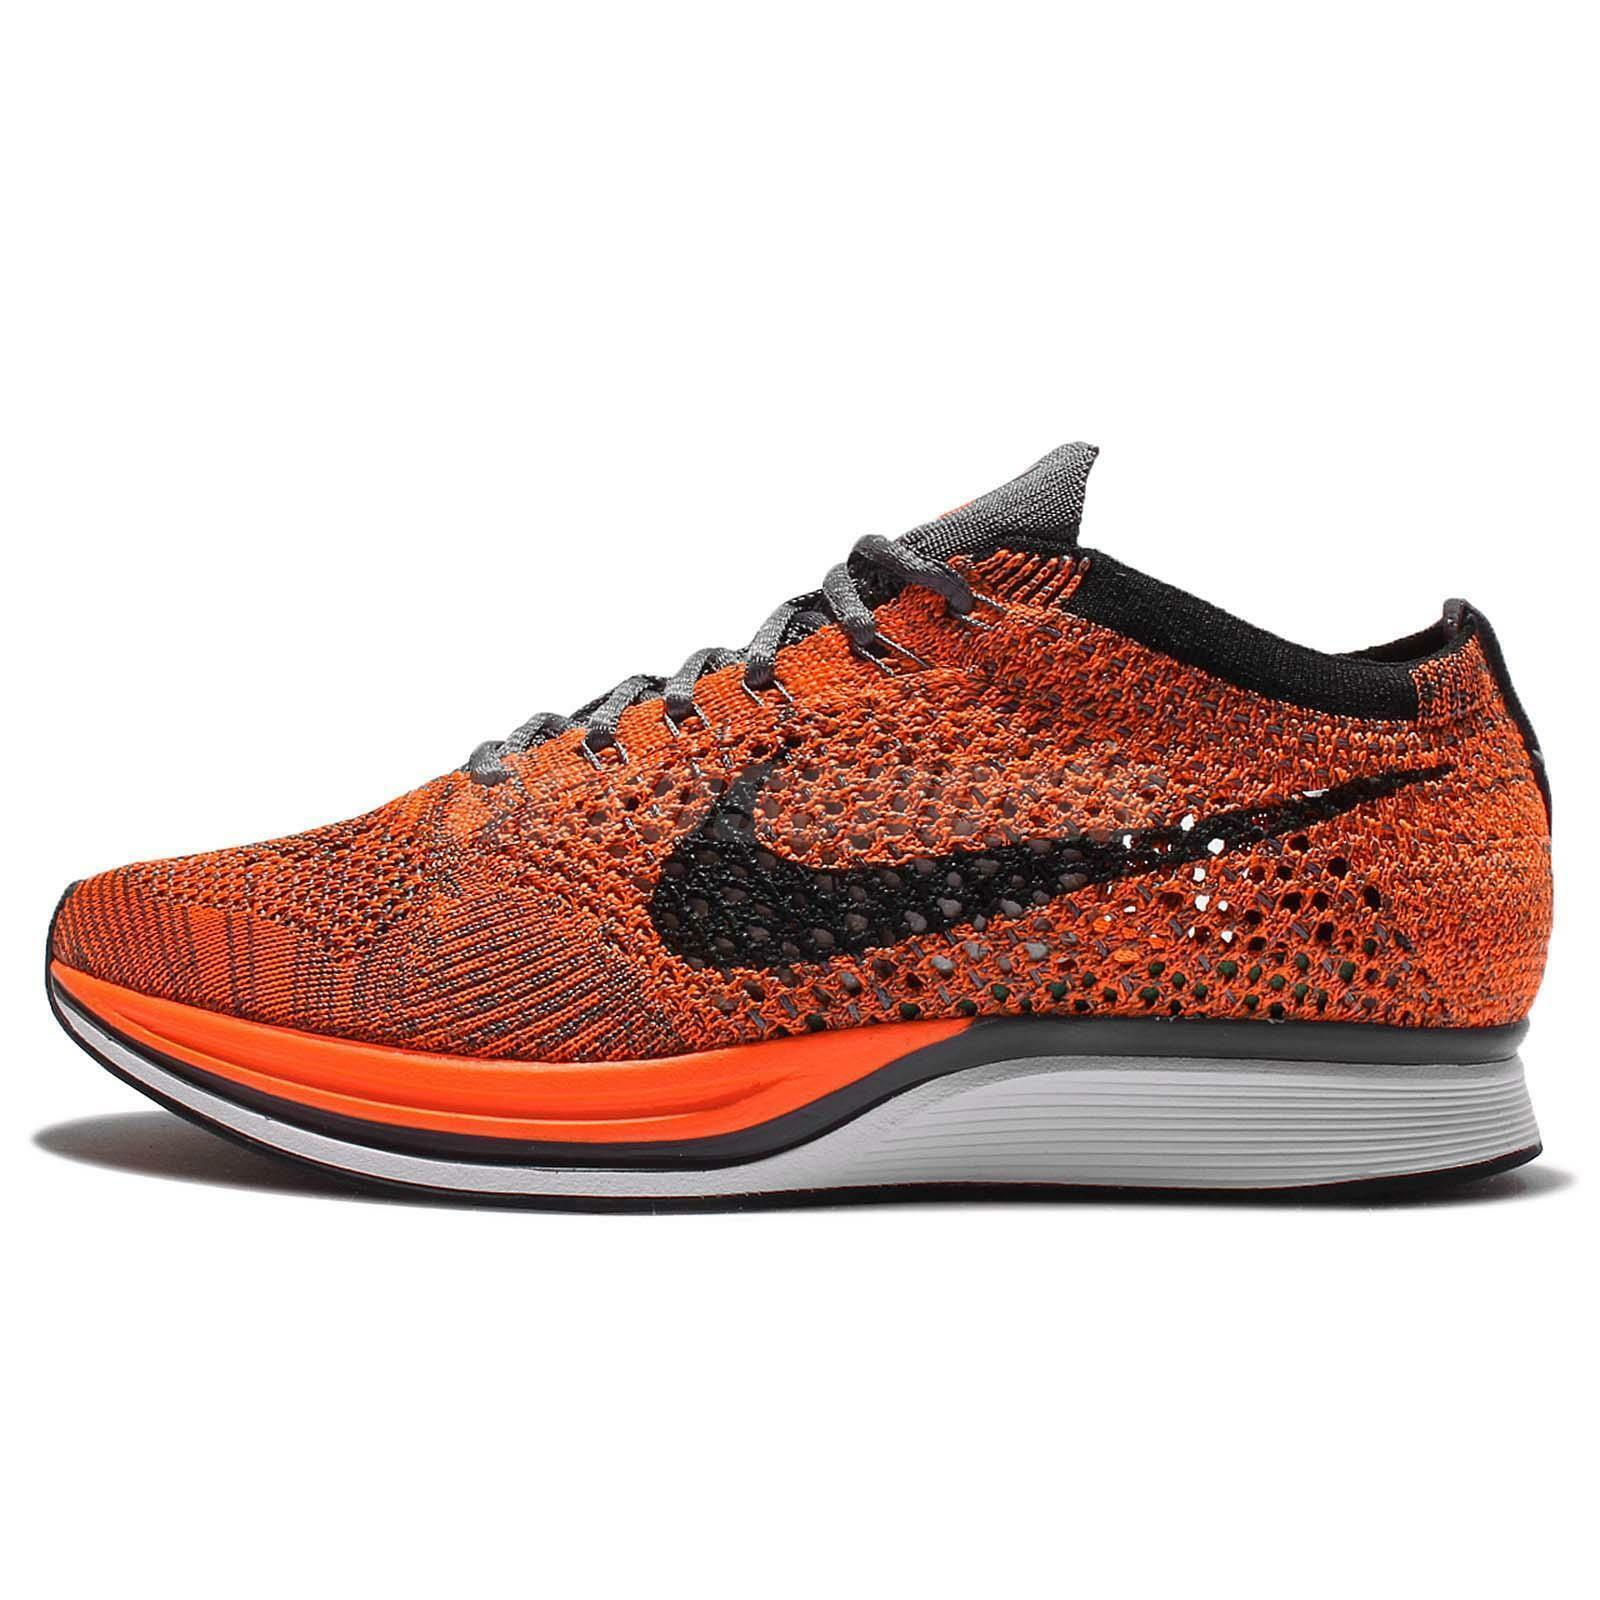 cheap for discount 1dcd8 9c5d8 57. 57. Previous. NIKE pour FEMMES Flyknit Débardeur Chaussures Orange  Blanc Gris ...